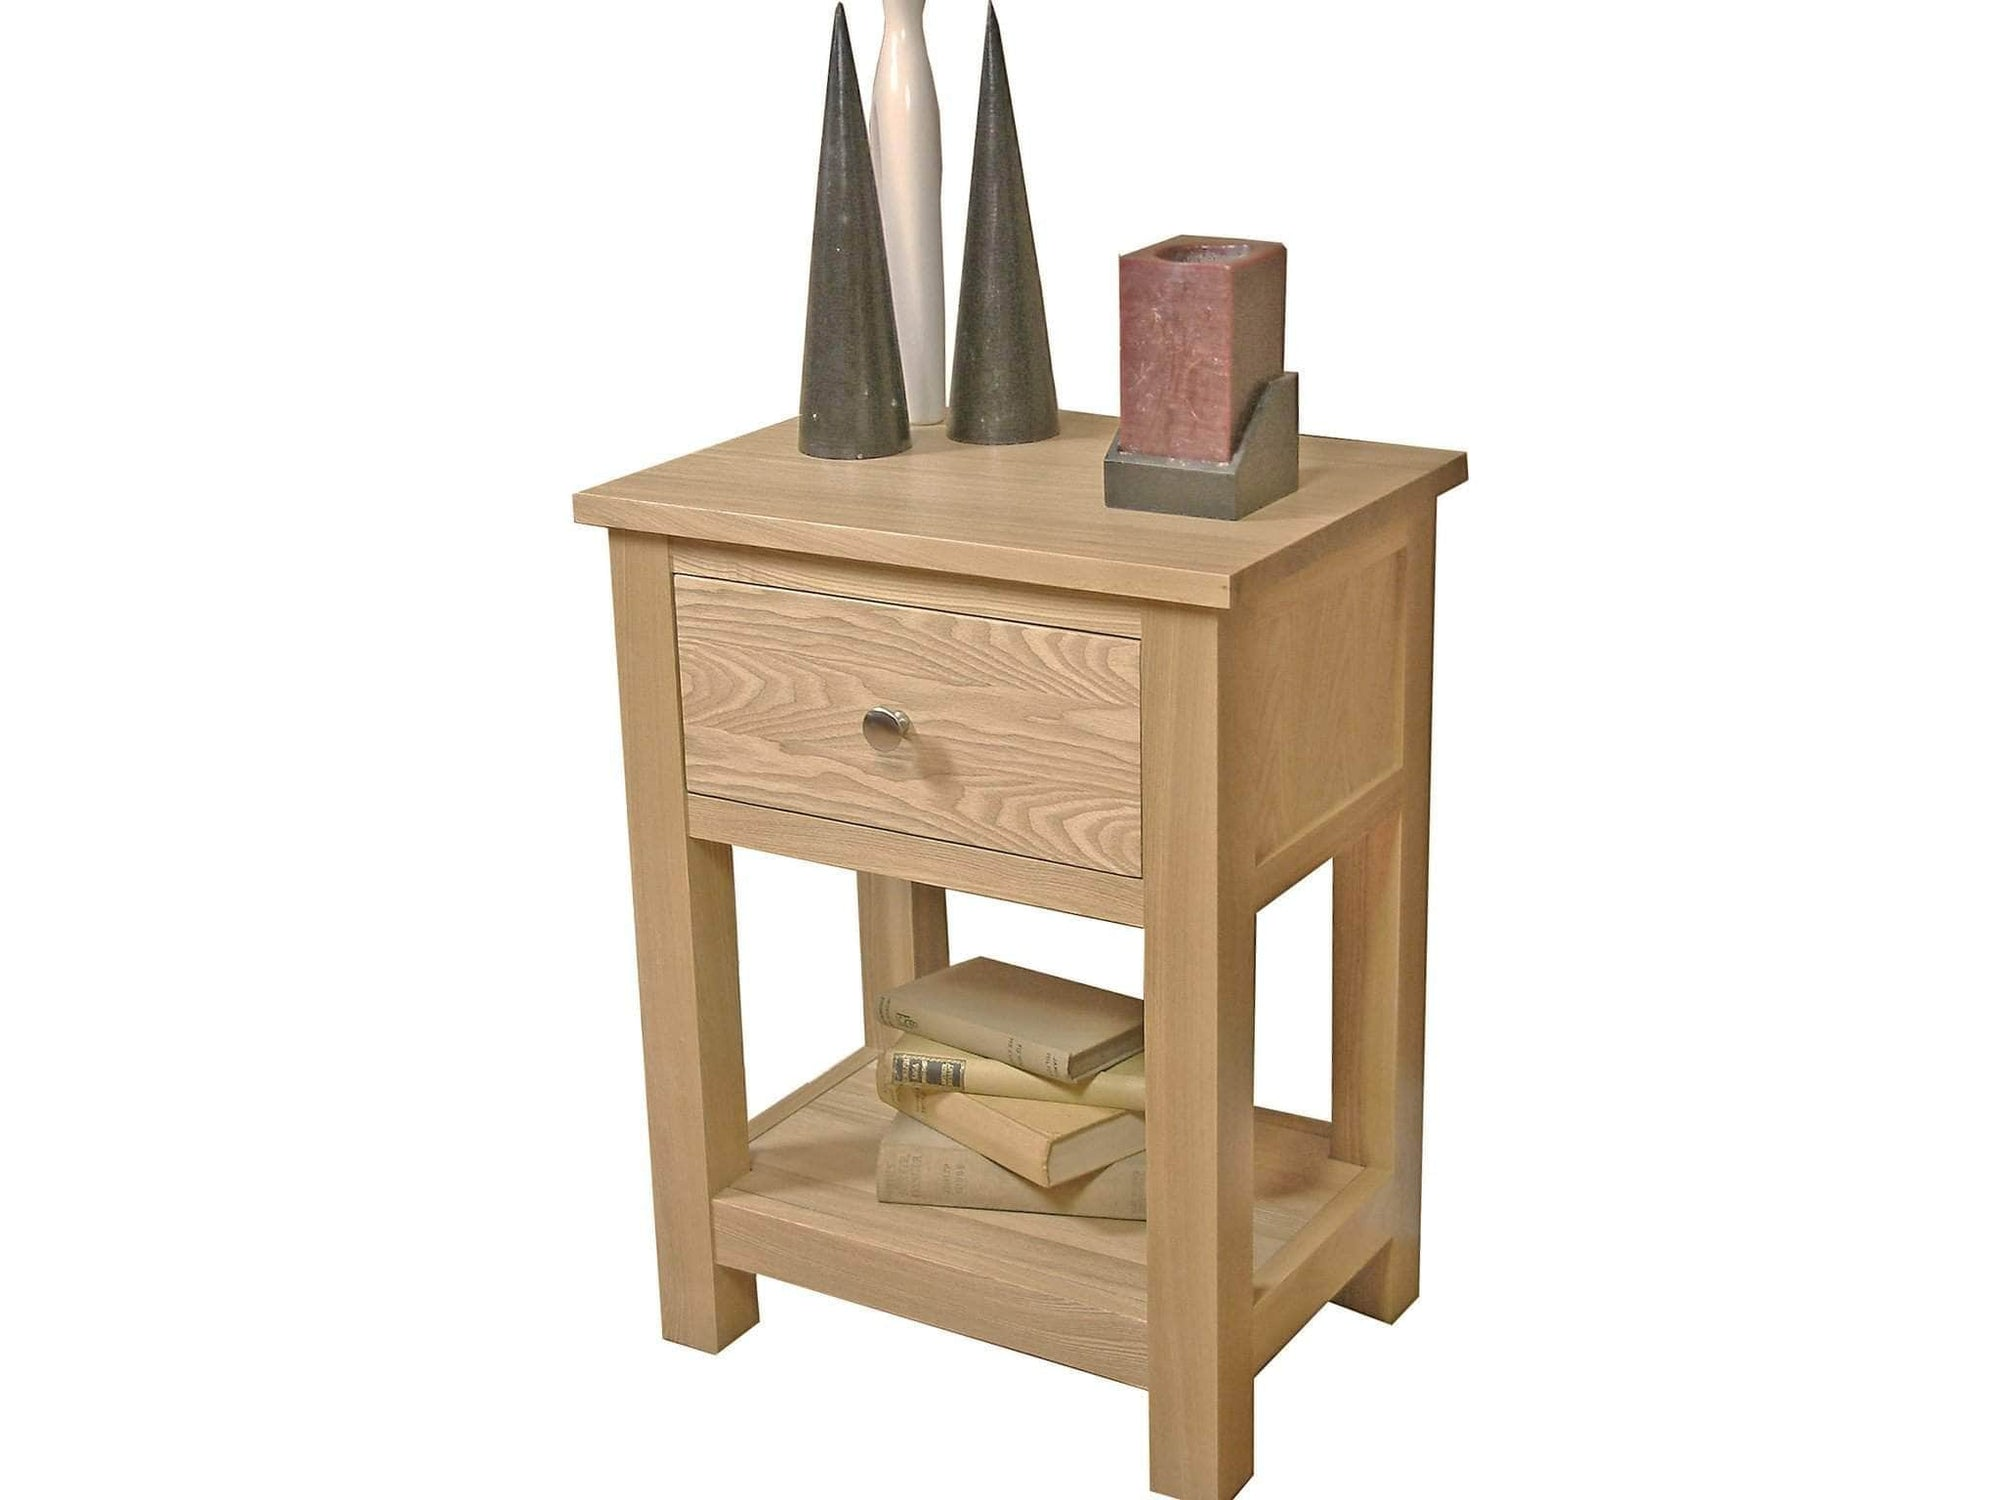 Small solid oak side table with one top drawer plus under shelf